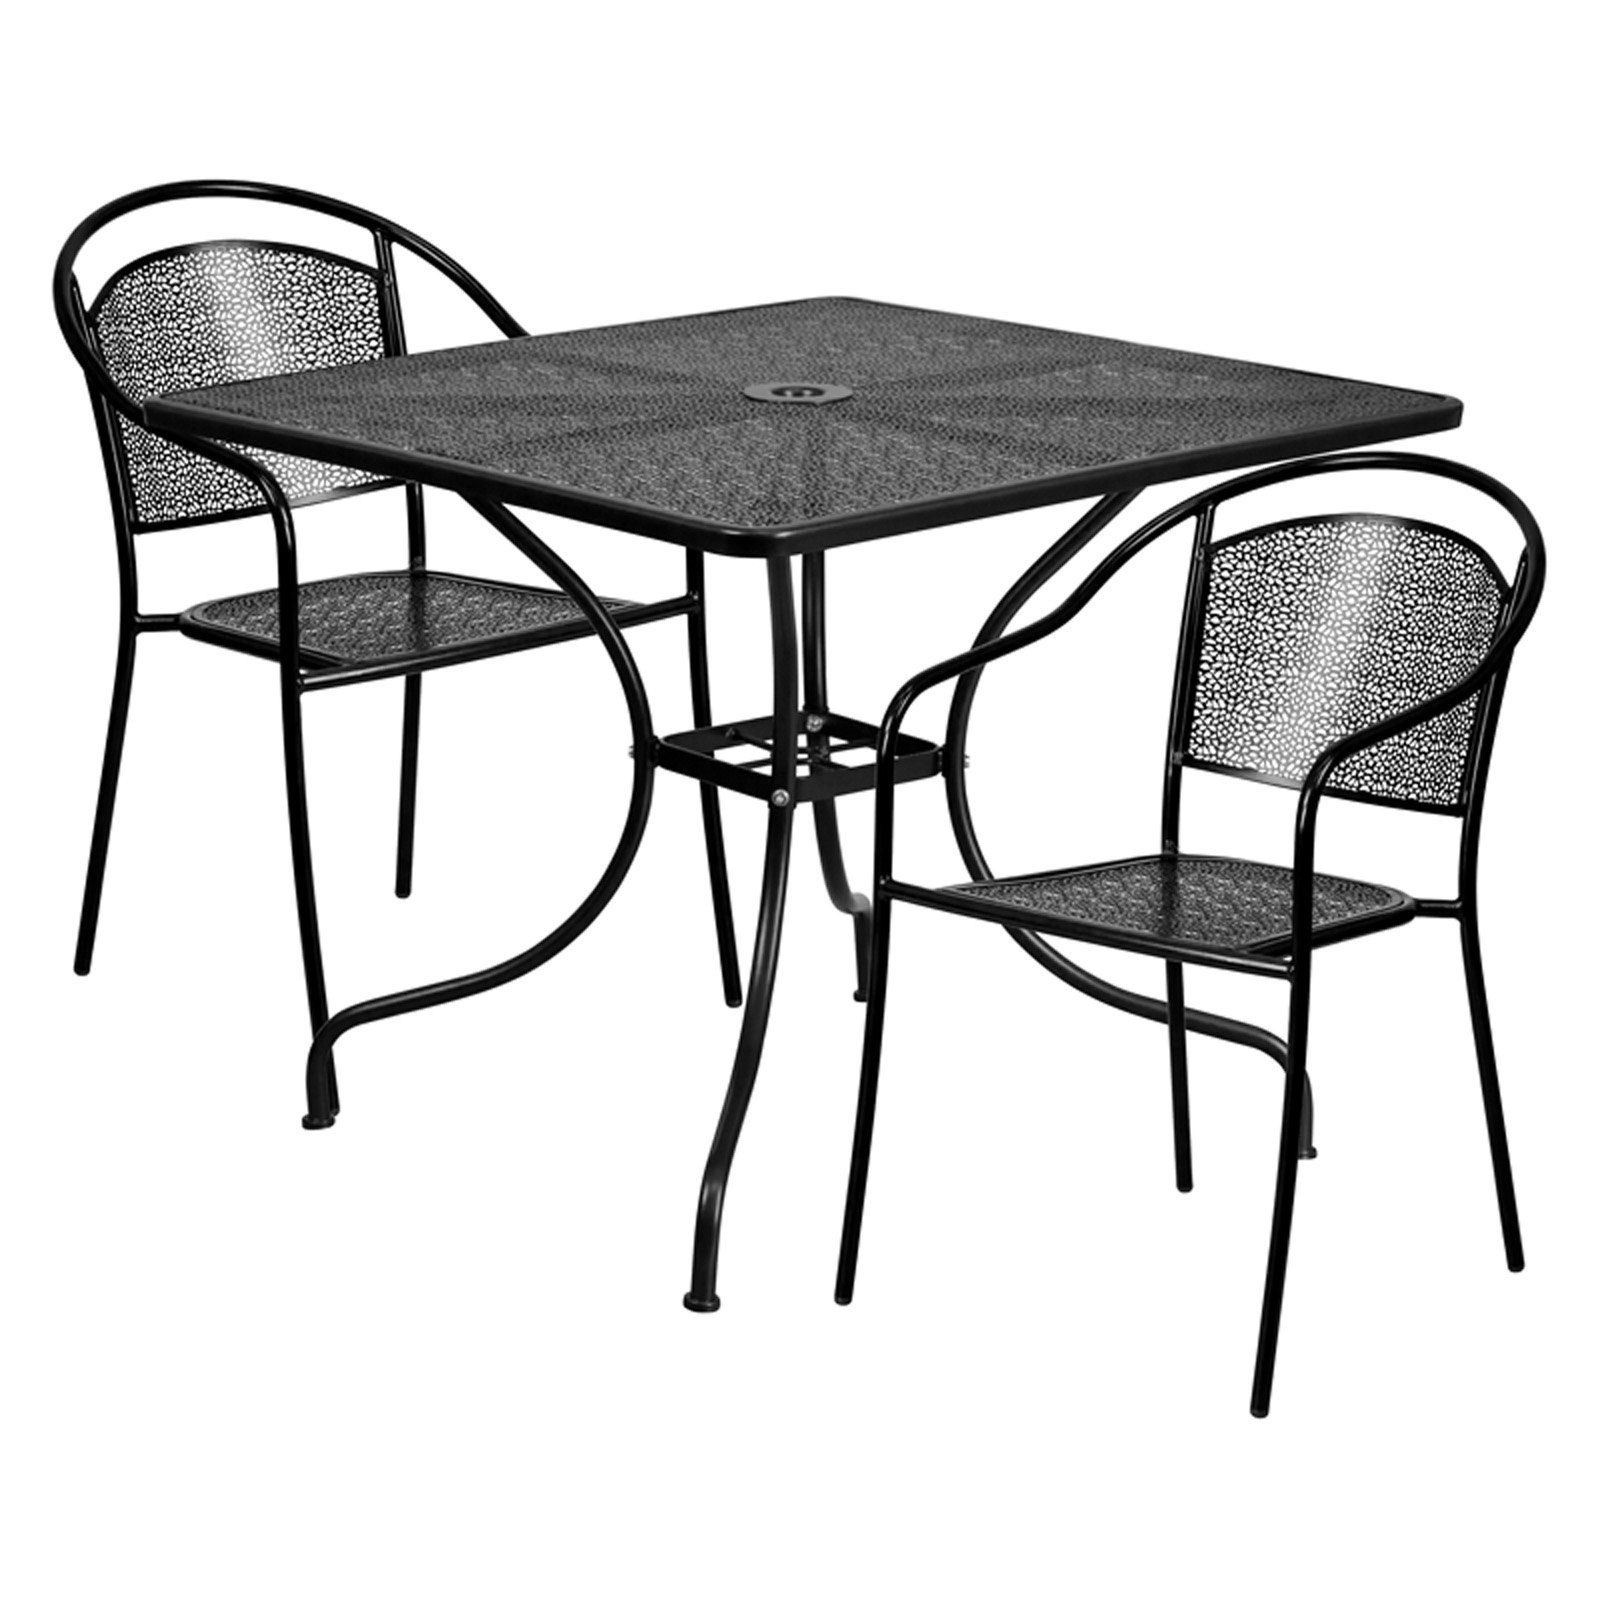 Outdoor Flash Furniture Steel Square Patio Bistro Set With 2 Round